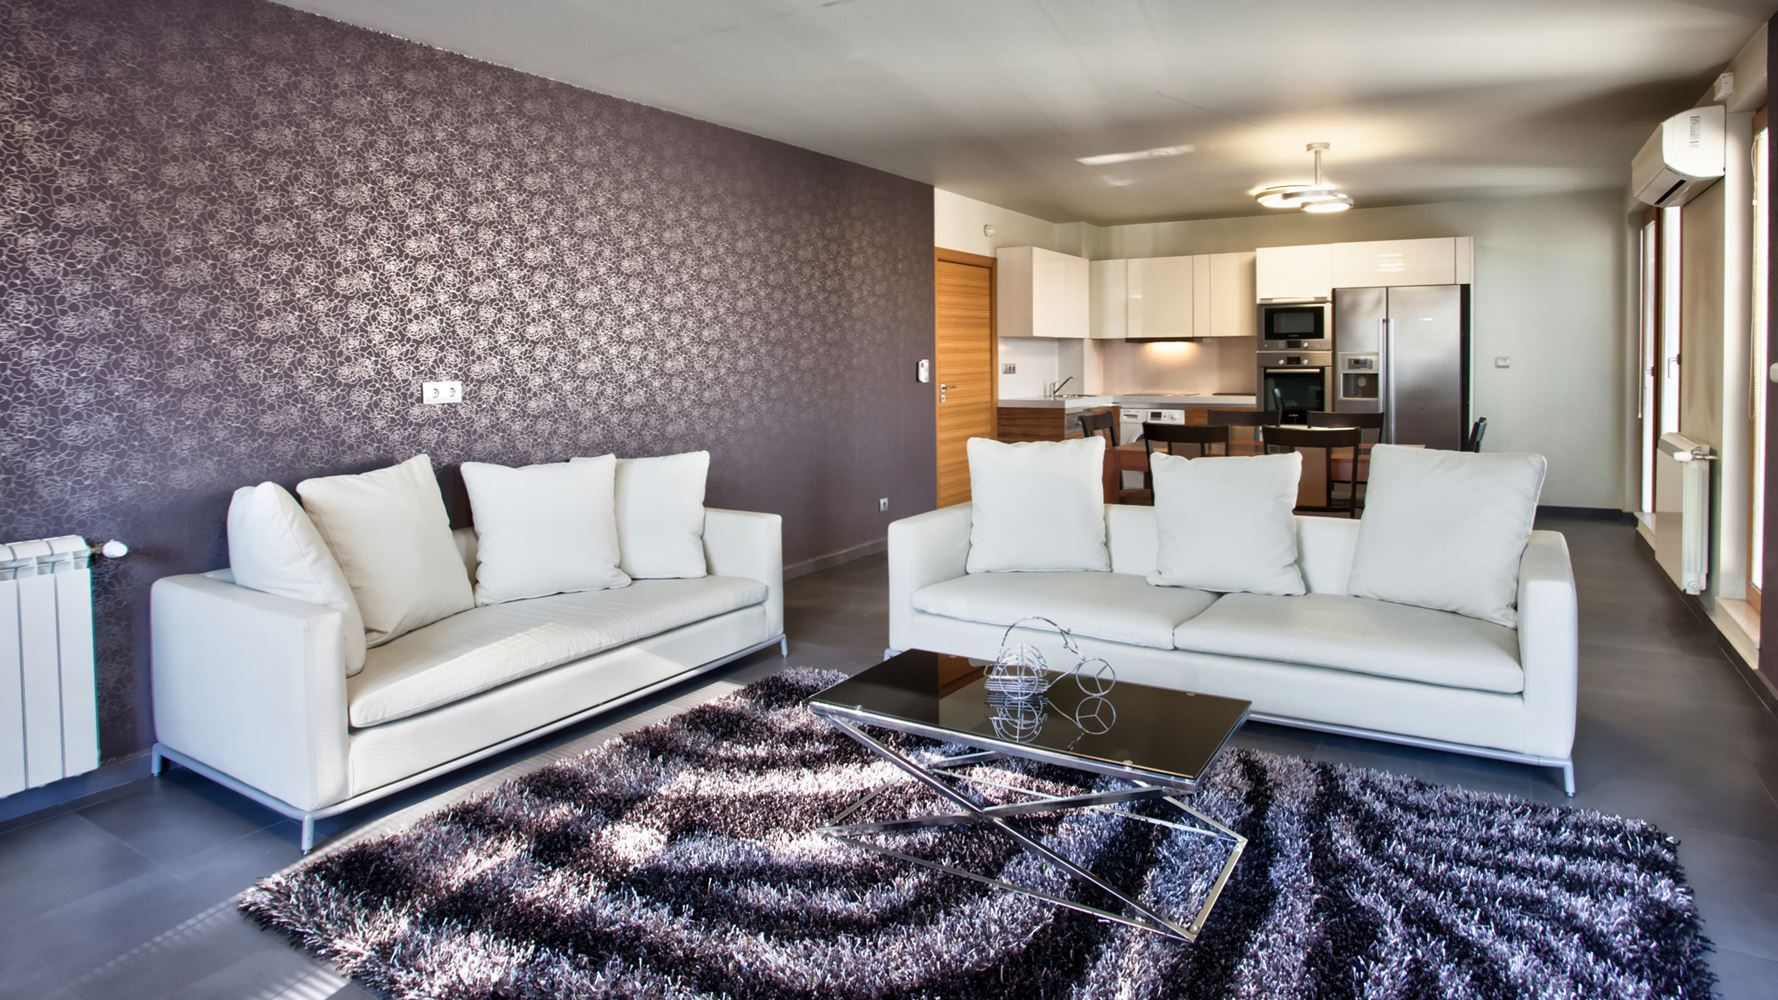 2-bedroom Apartment for Rent, Dragalevtsi